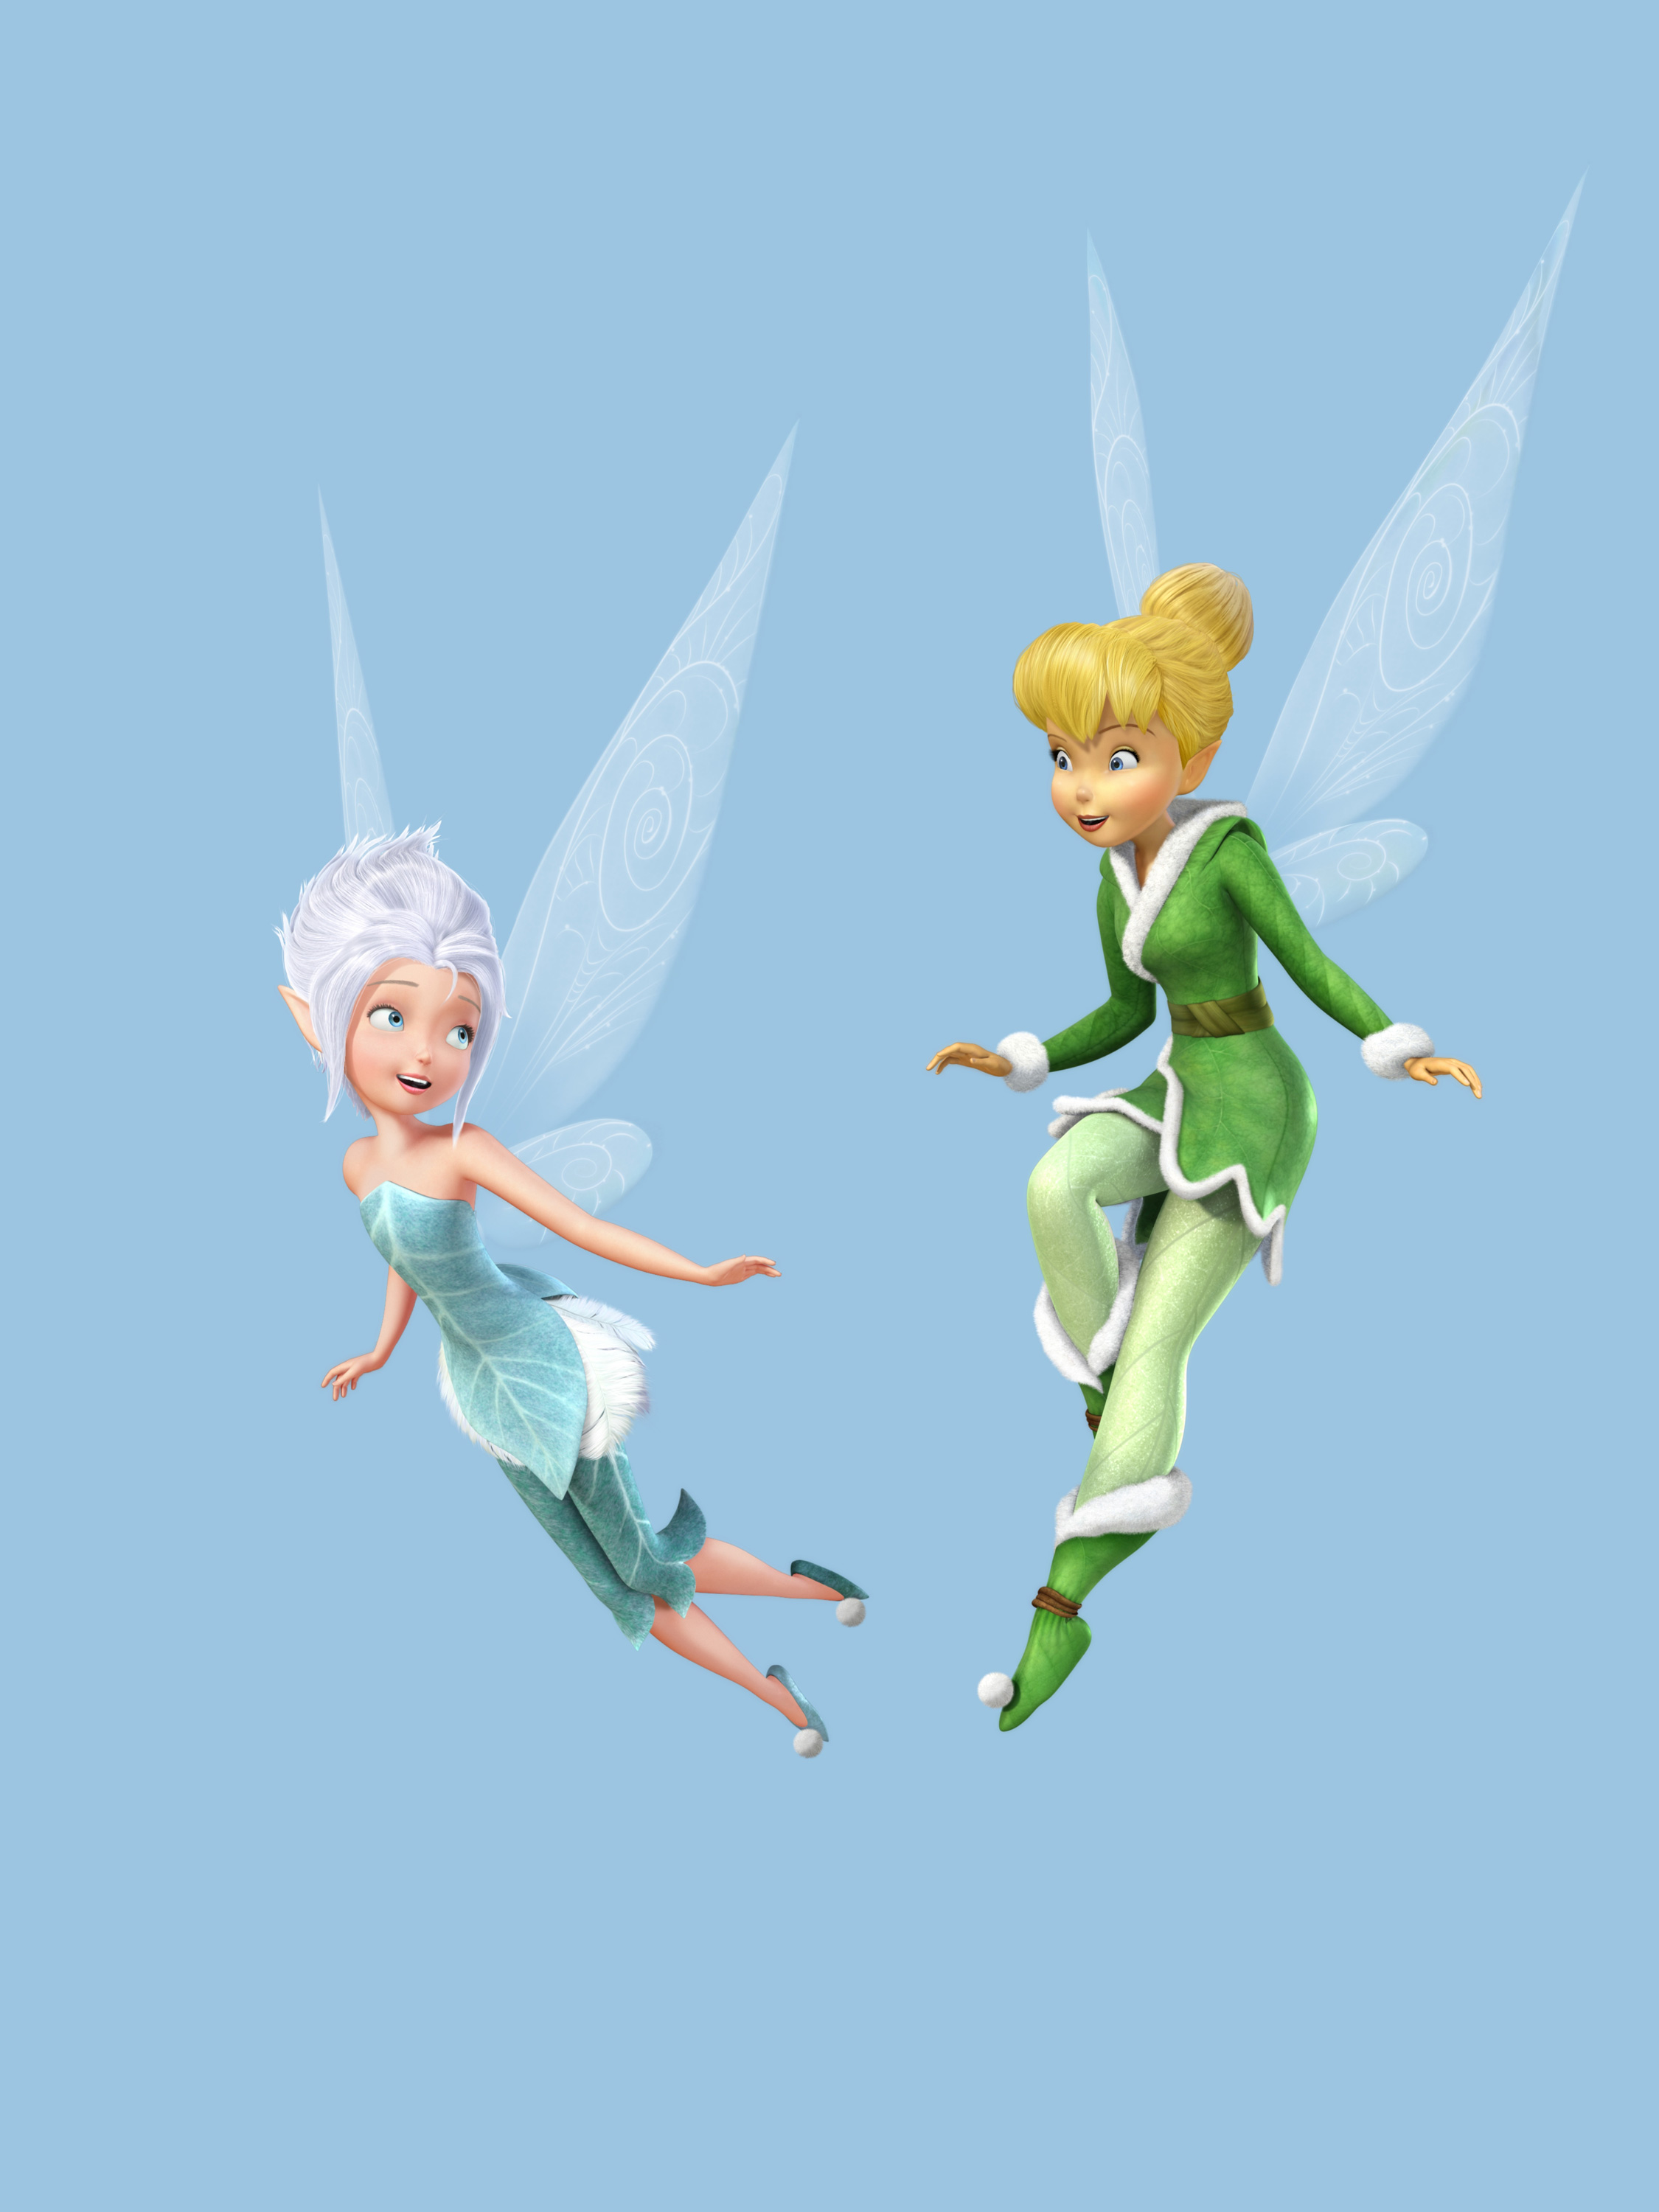 Nude tinkerbell animations nackt pics